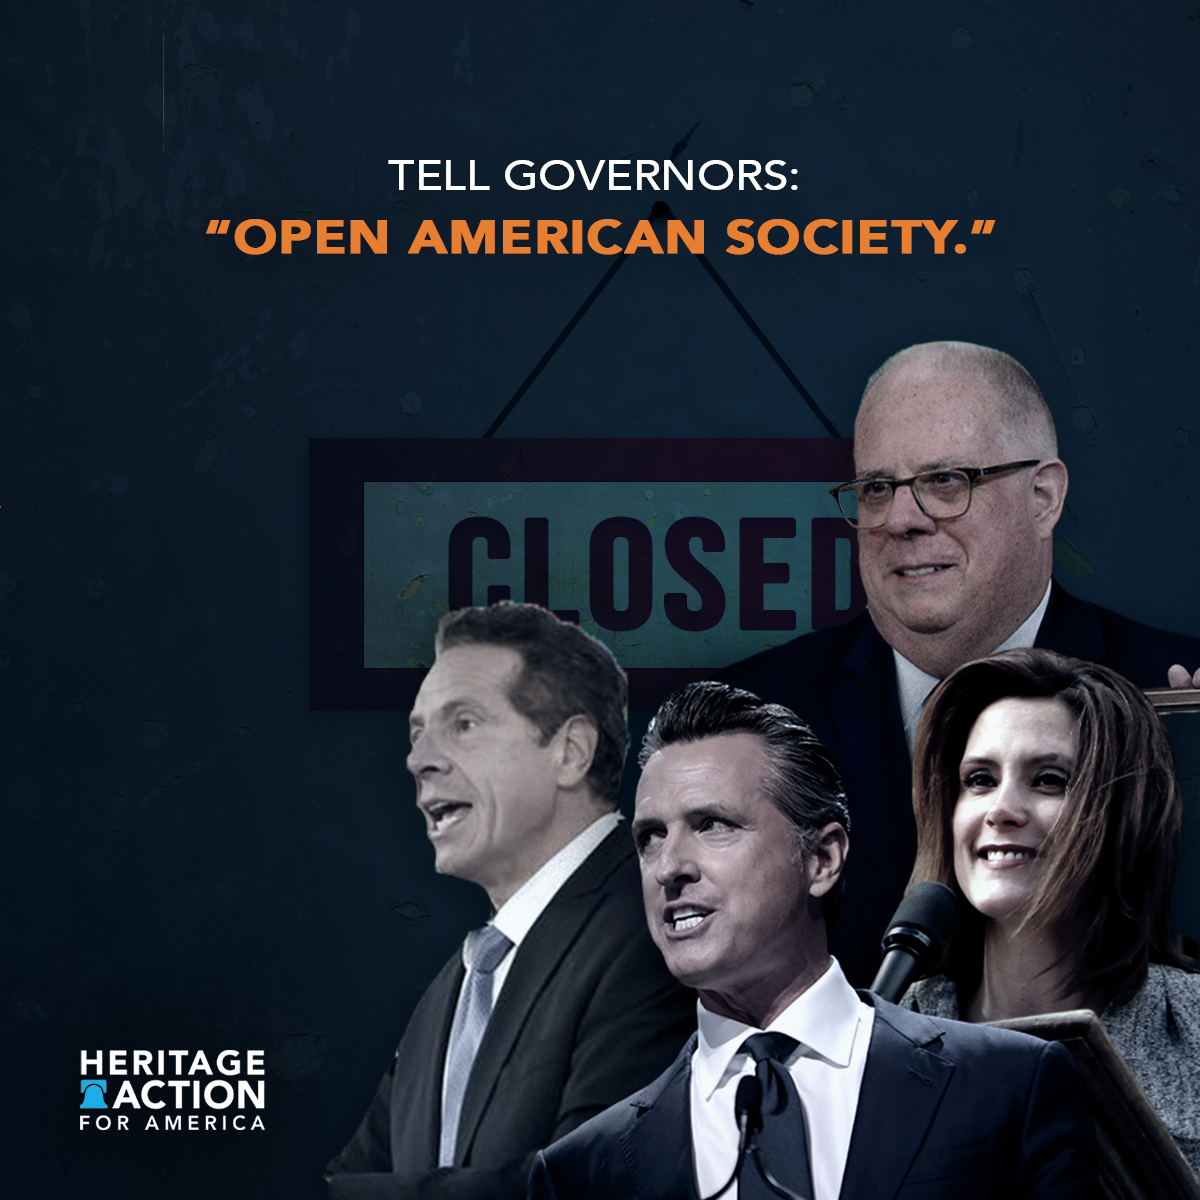 Campaign advertisement. Provided by Heritage Action